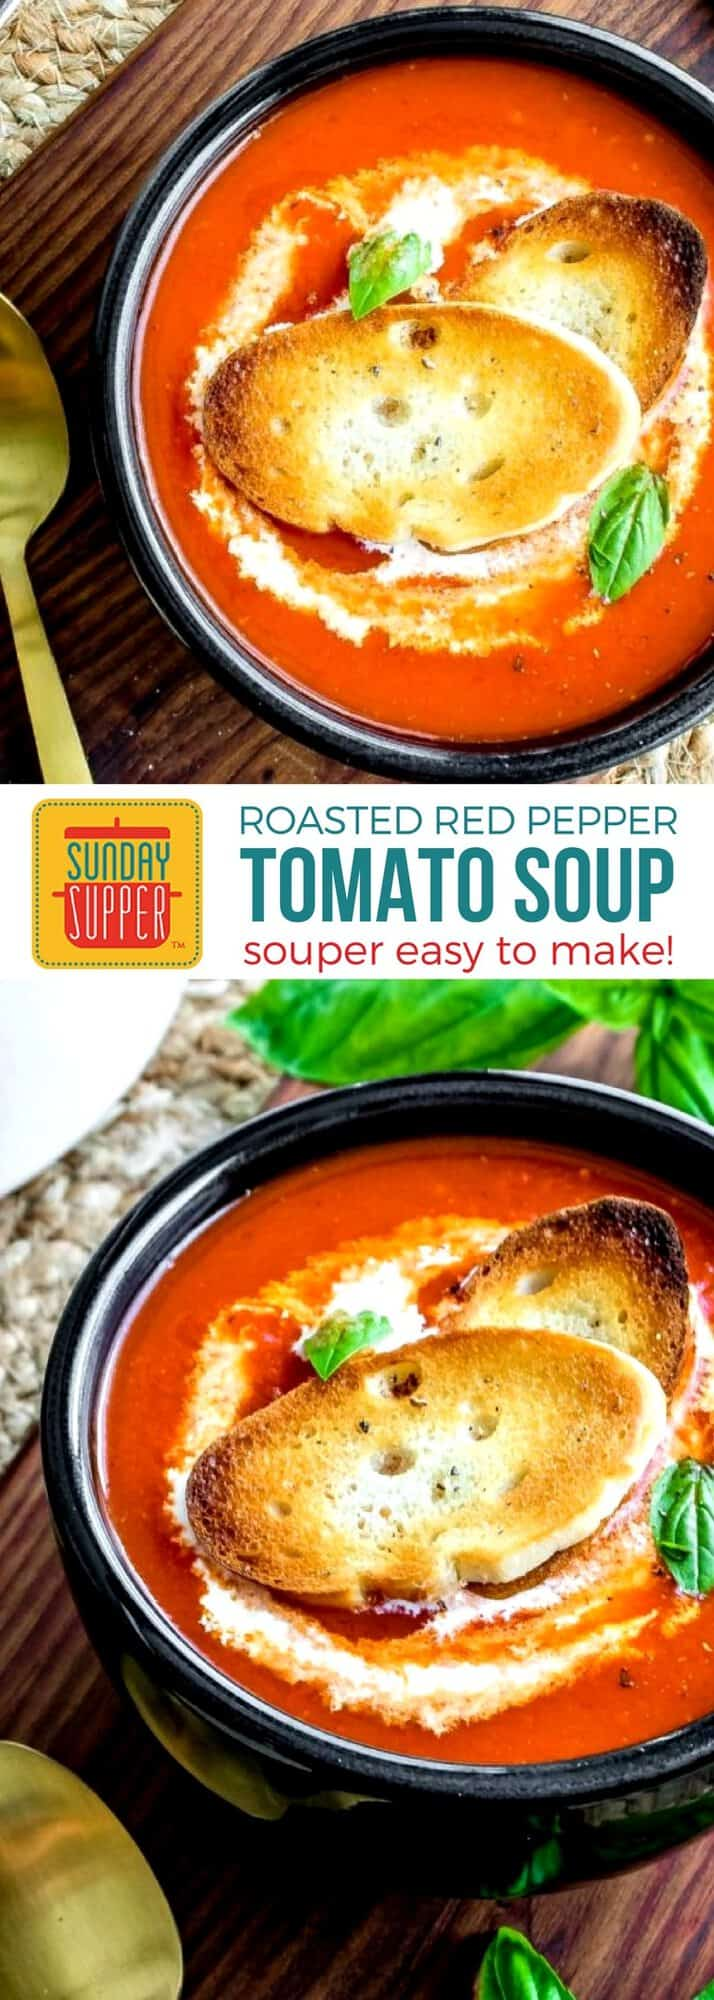 Get ready for fall with our simple comfort food recipes. Make a big batch of this Roasted Red Pepper Tomato Soup for dinner and gather the family around the table. This simple, smoky soup only uses a few simple ingredients so it is easy to make. It's the perfect cold weather comfort food. #SundaySupper #ComfortFoodRecipes #RoastedRedPepperTomatoSoup